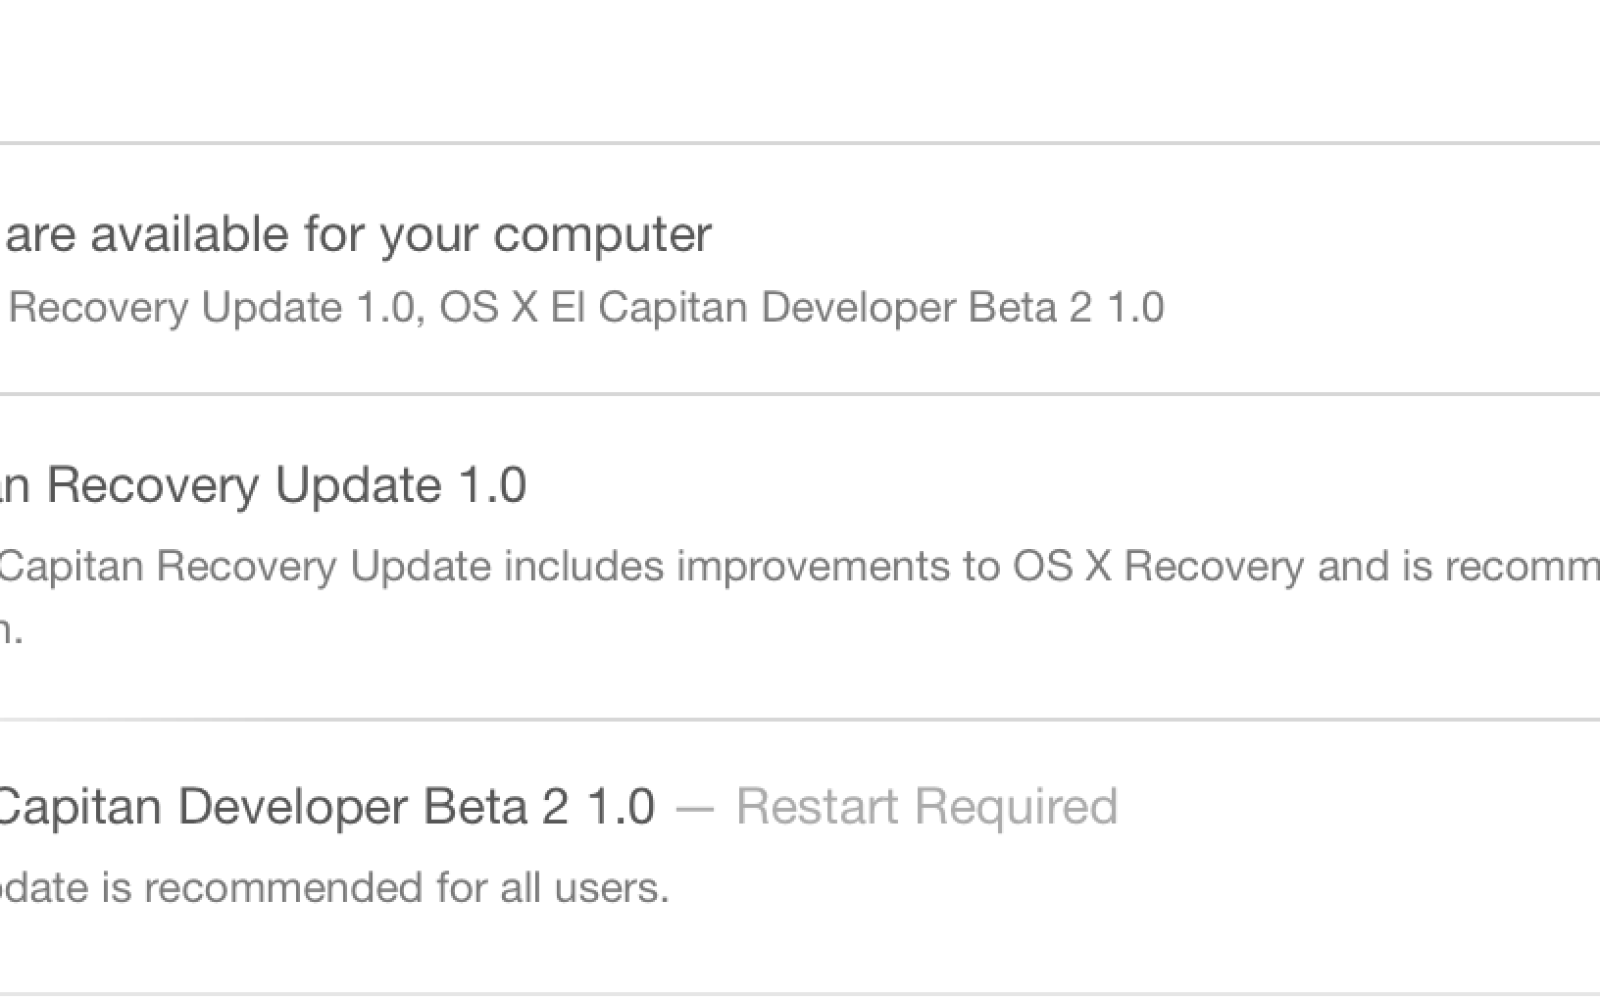 Apple releases OS X 10.11 El Capitan beta 2 to developers